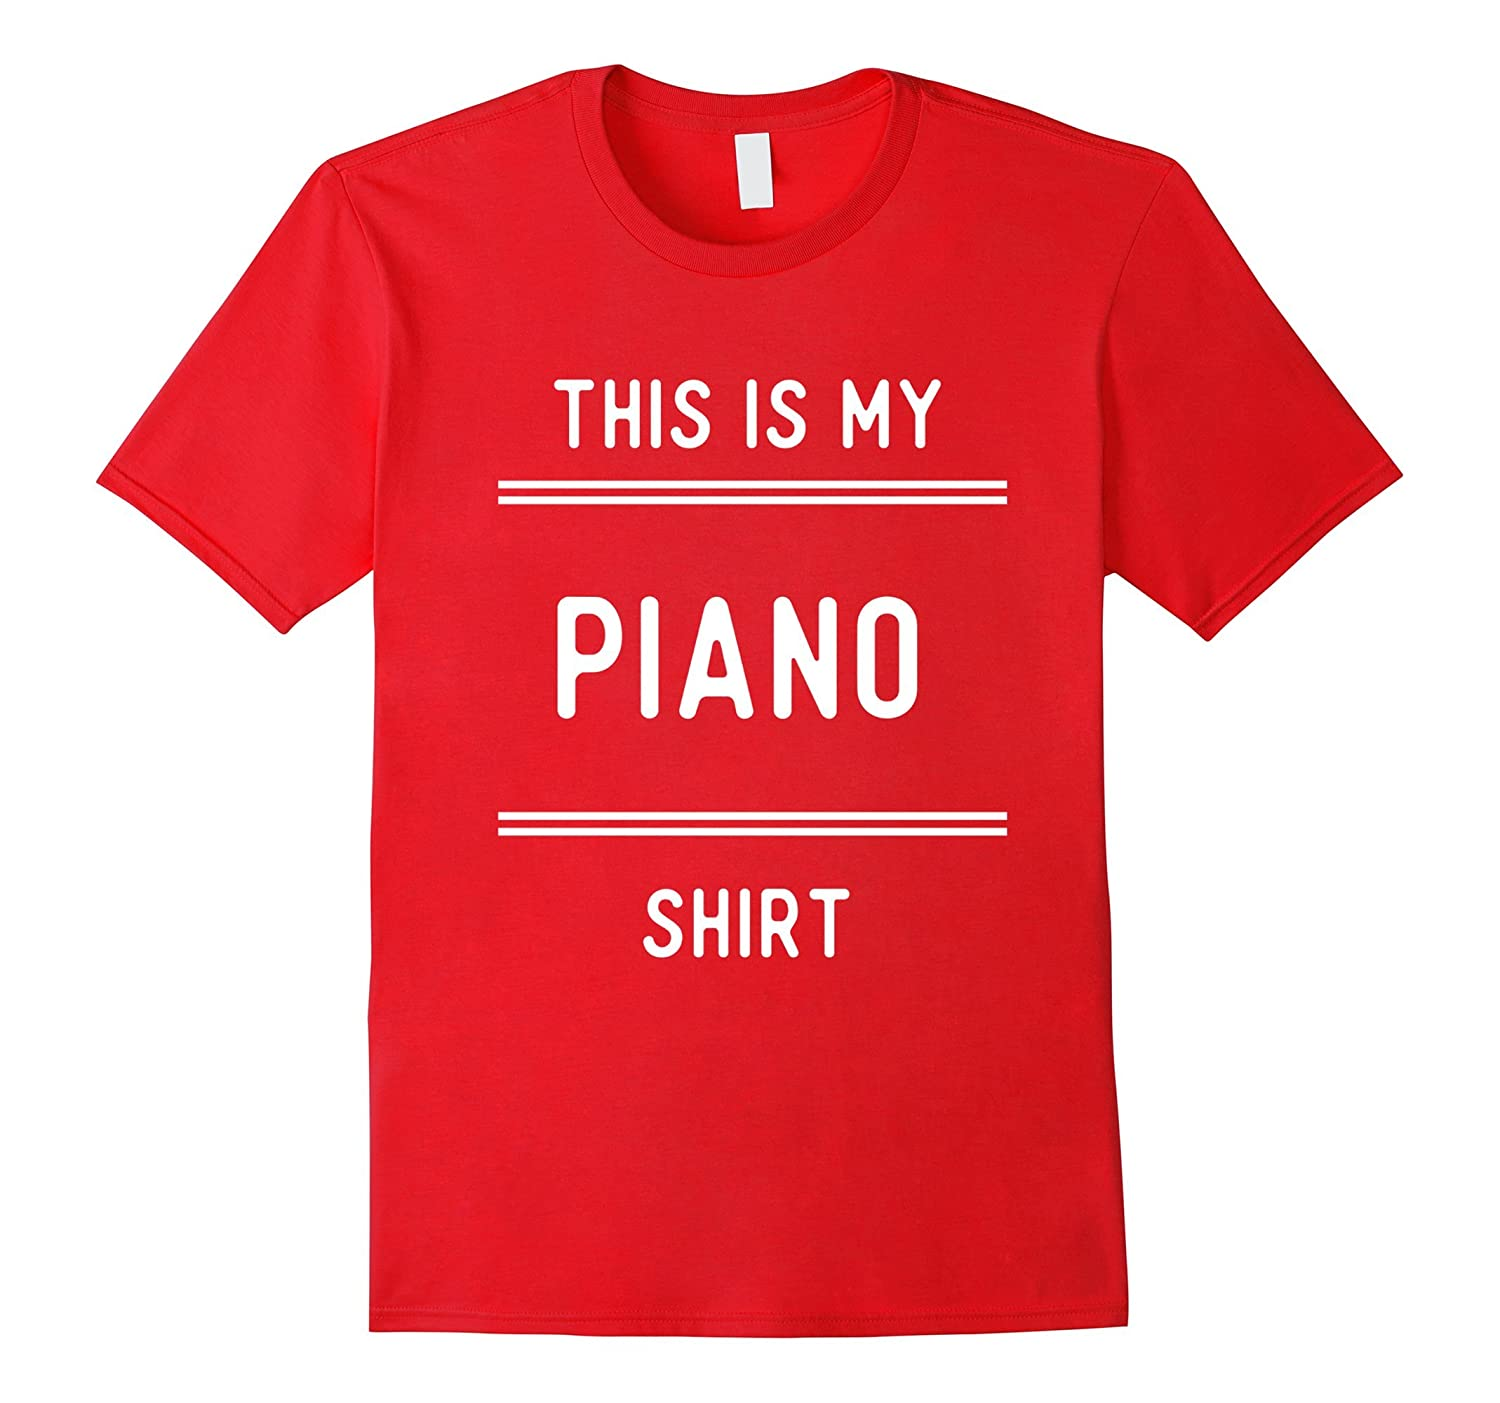 Funny, My Piano T Shirts Gifts for Players Play Piano.-FL